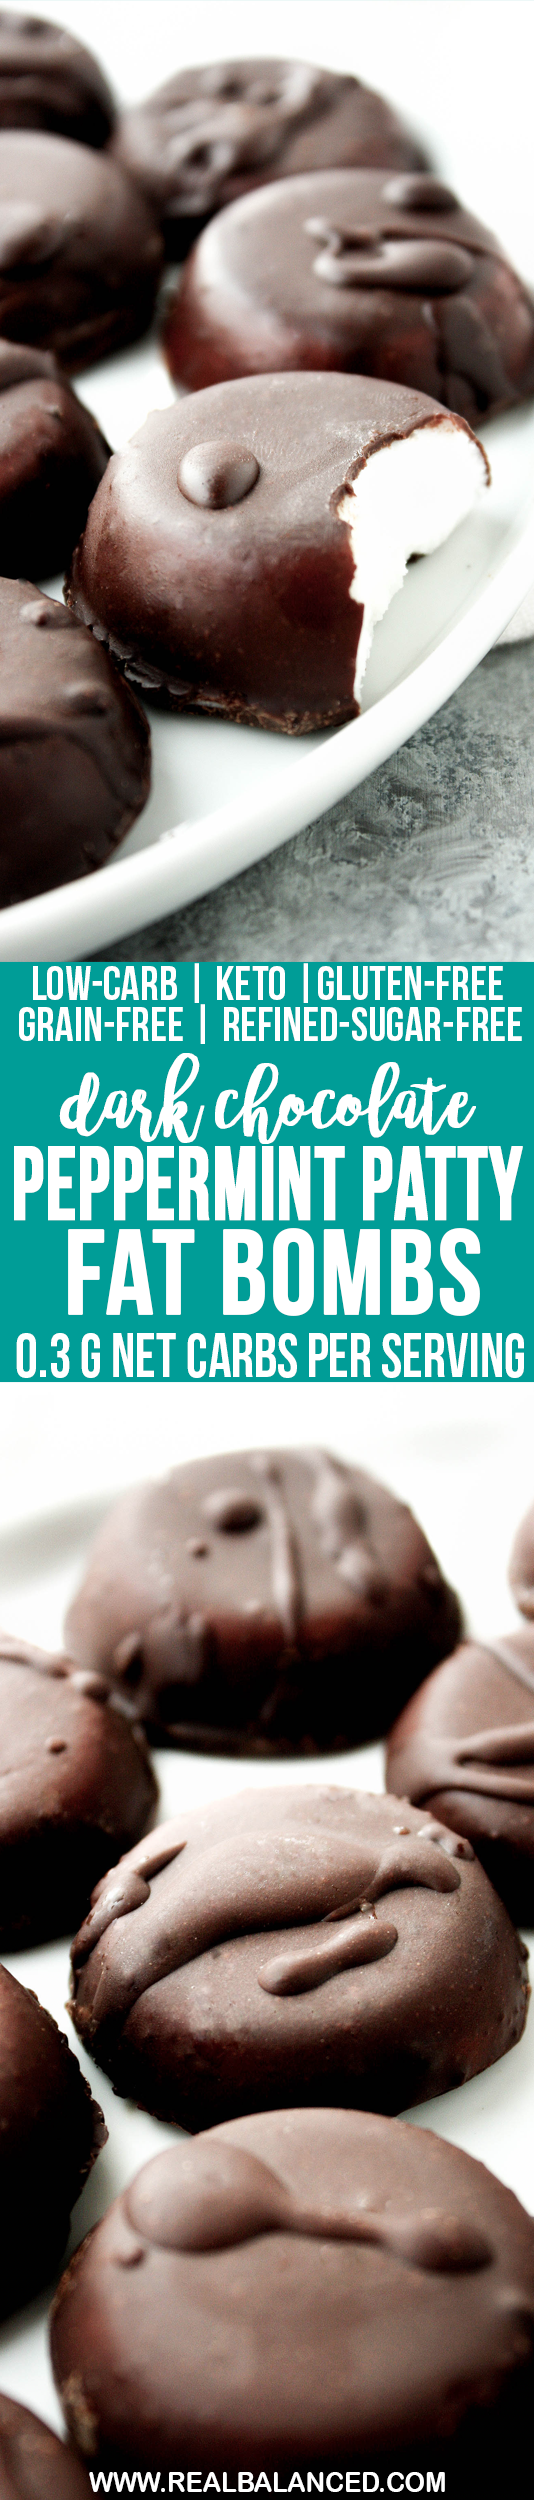 Dark Chocolate Peppermint Patty Fat Bombs: low-carb, keto, gluten-free, grain-free, vegetarian, & refined-sugar-free; only 0.3g net carbs per serving!